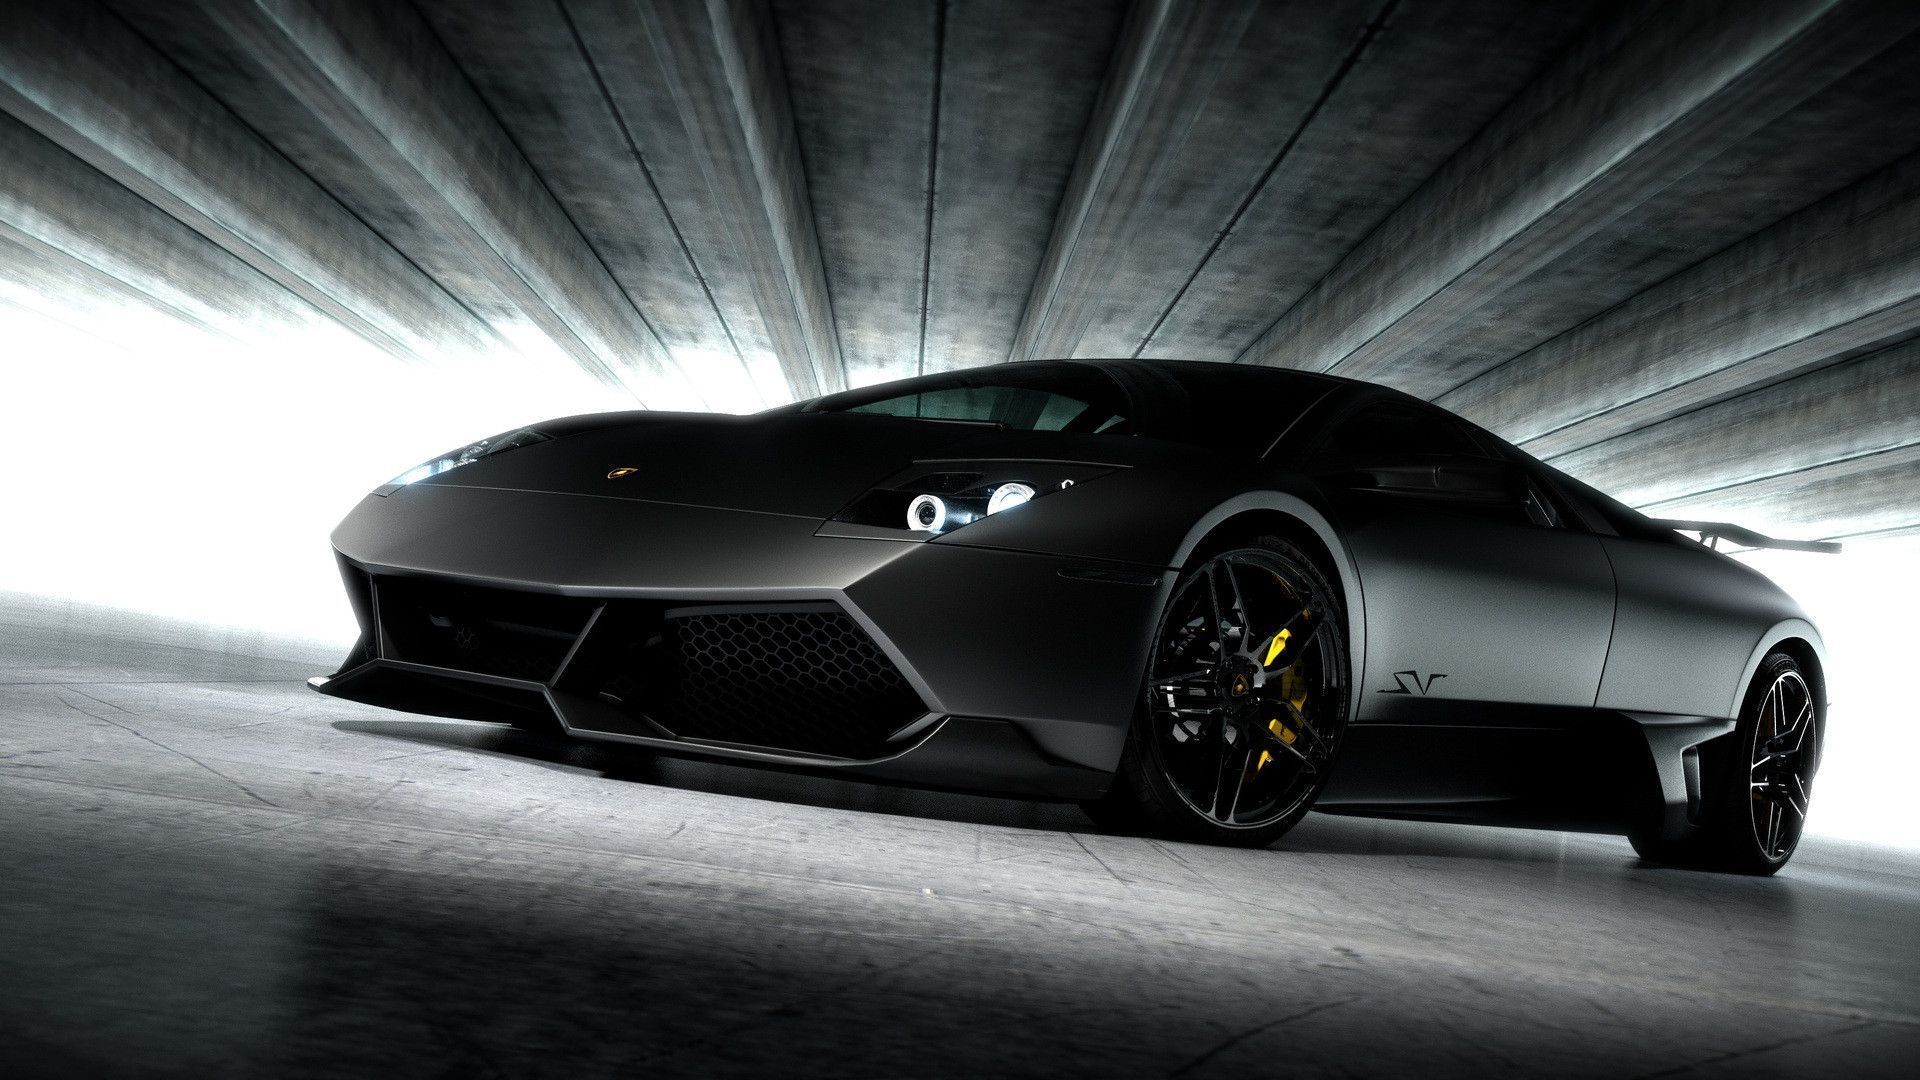 Amazing Wallpaper Mac Lamborghini - 4b17c2eb1000e6db2584de2cda750800  Picture_35270.jpg